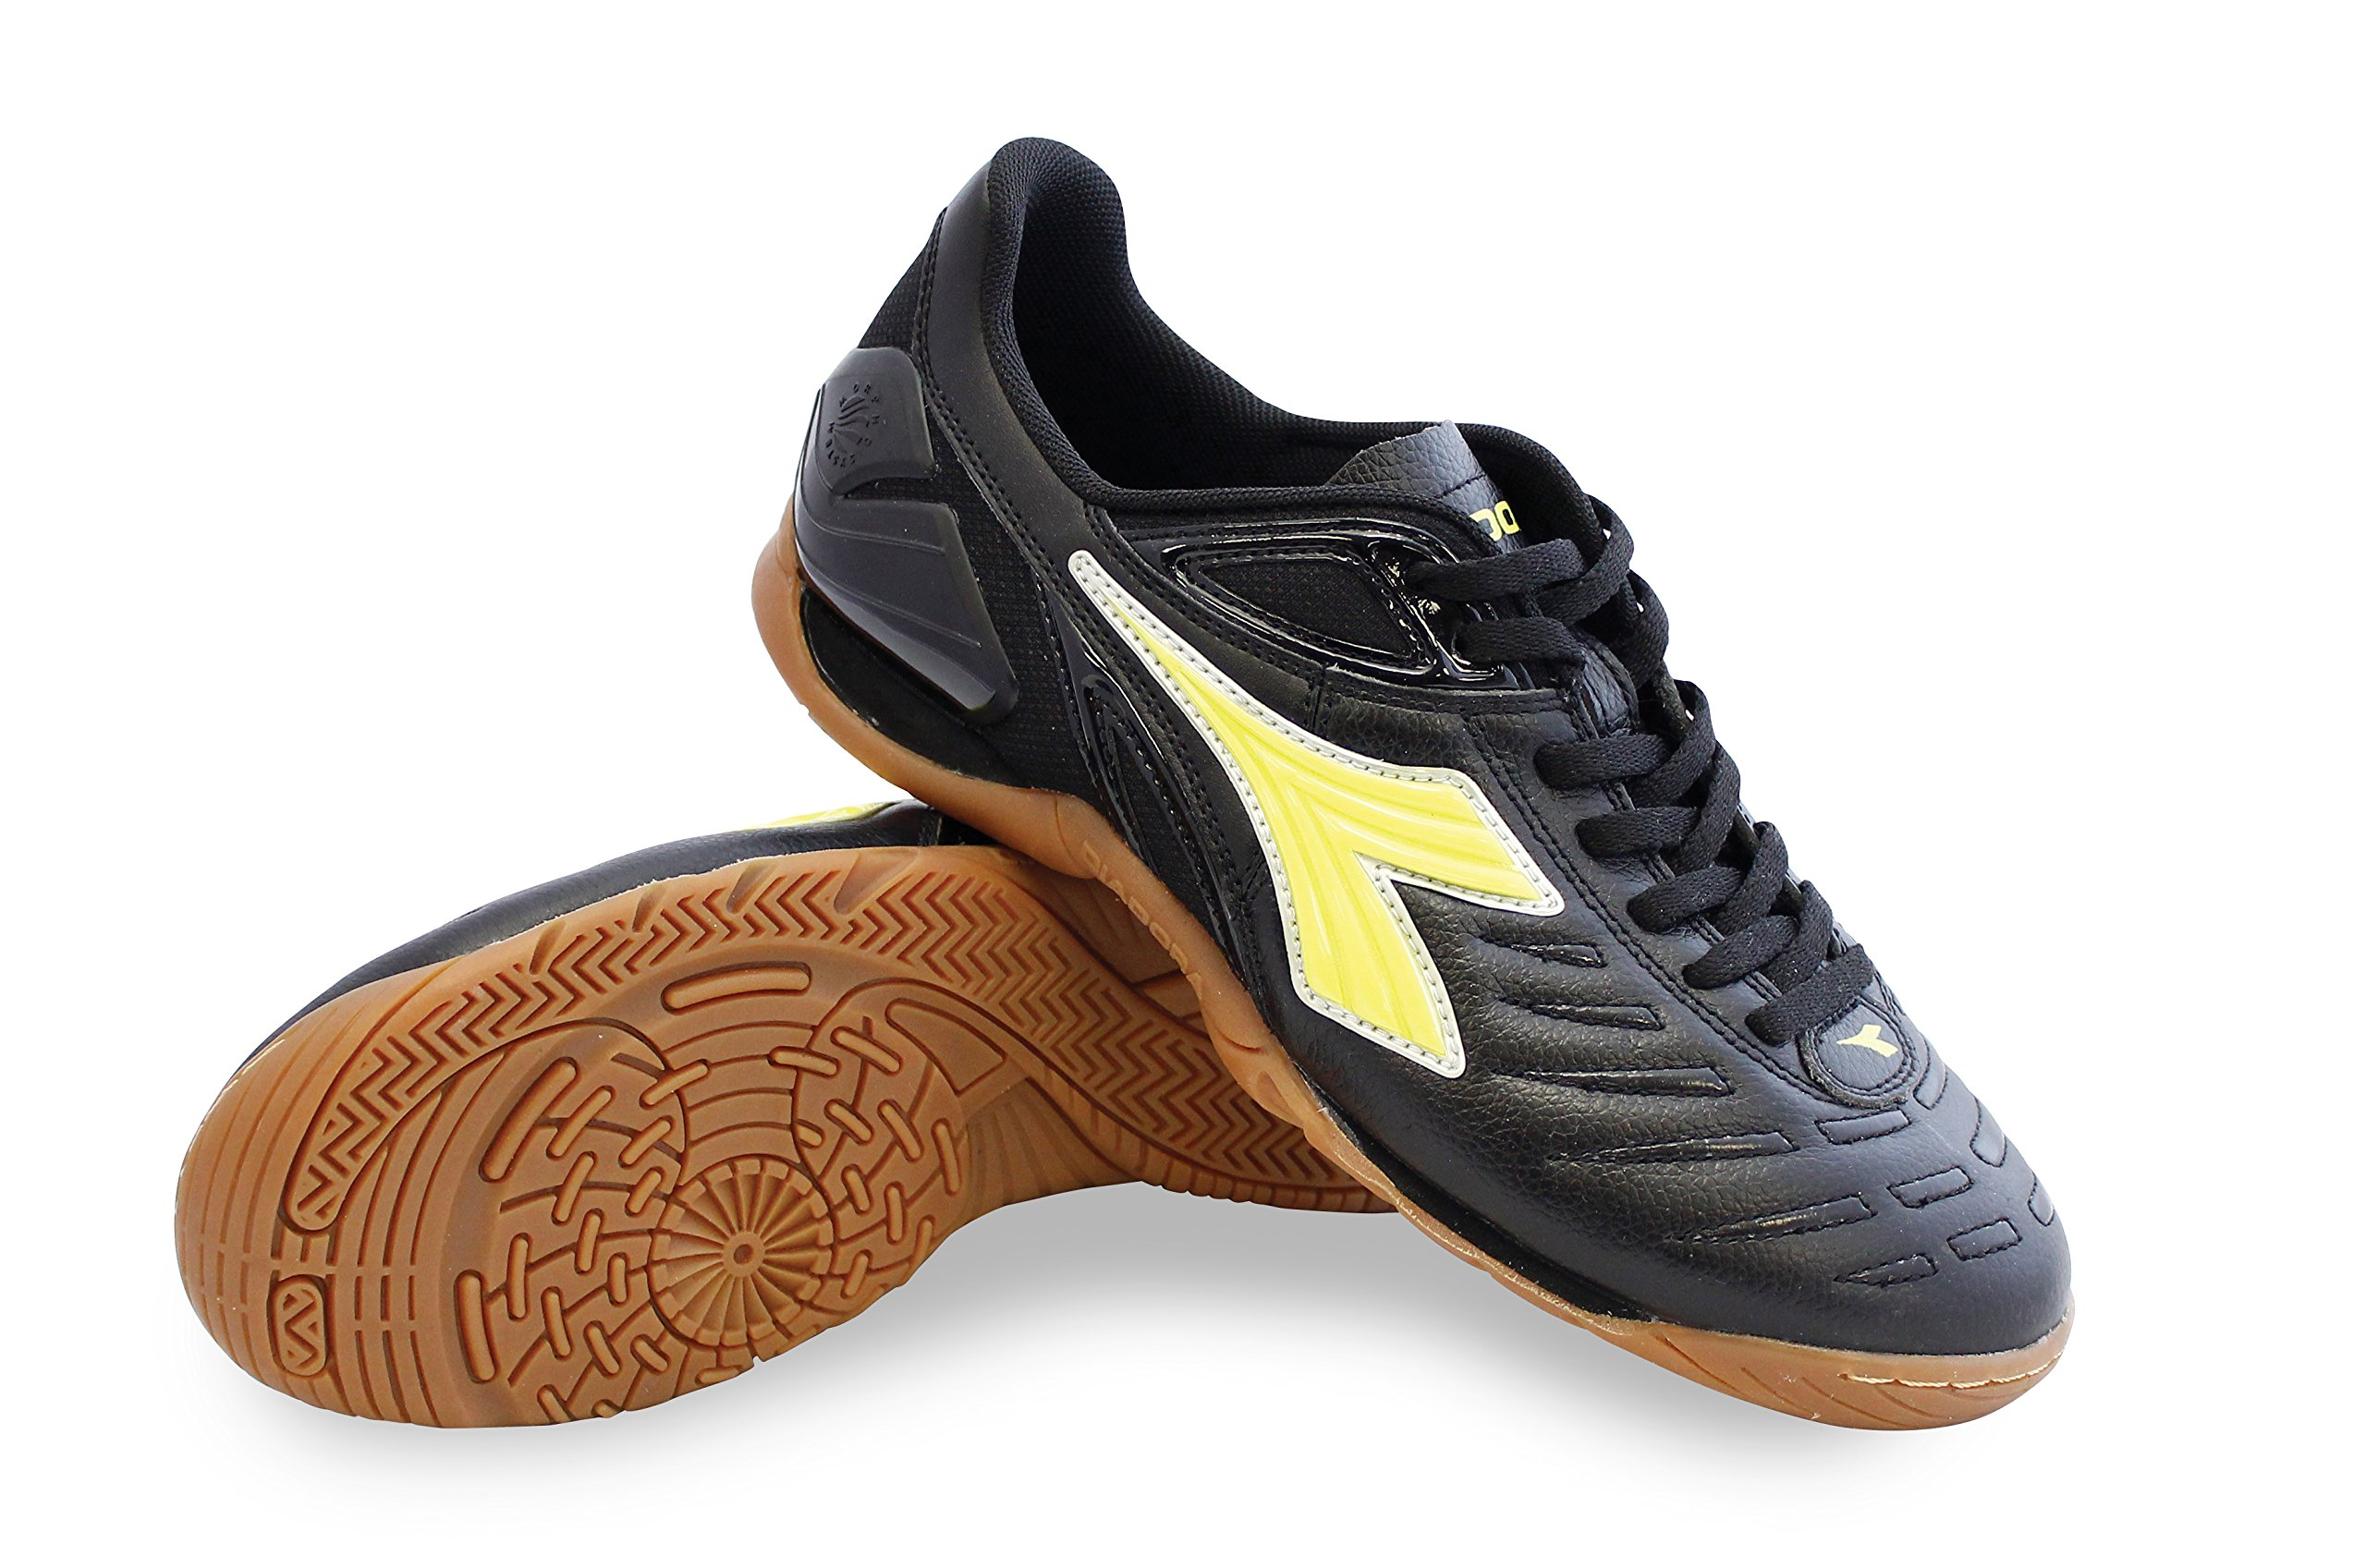 Diadora Maracana 18 ID Black/Fluo Yellow Men's 9, Women's 10.5 Medium